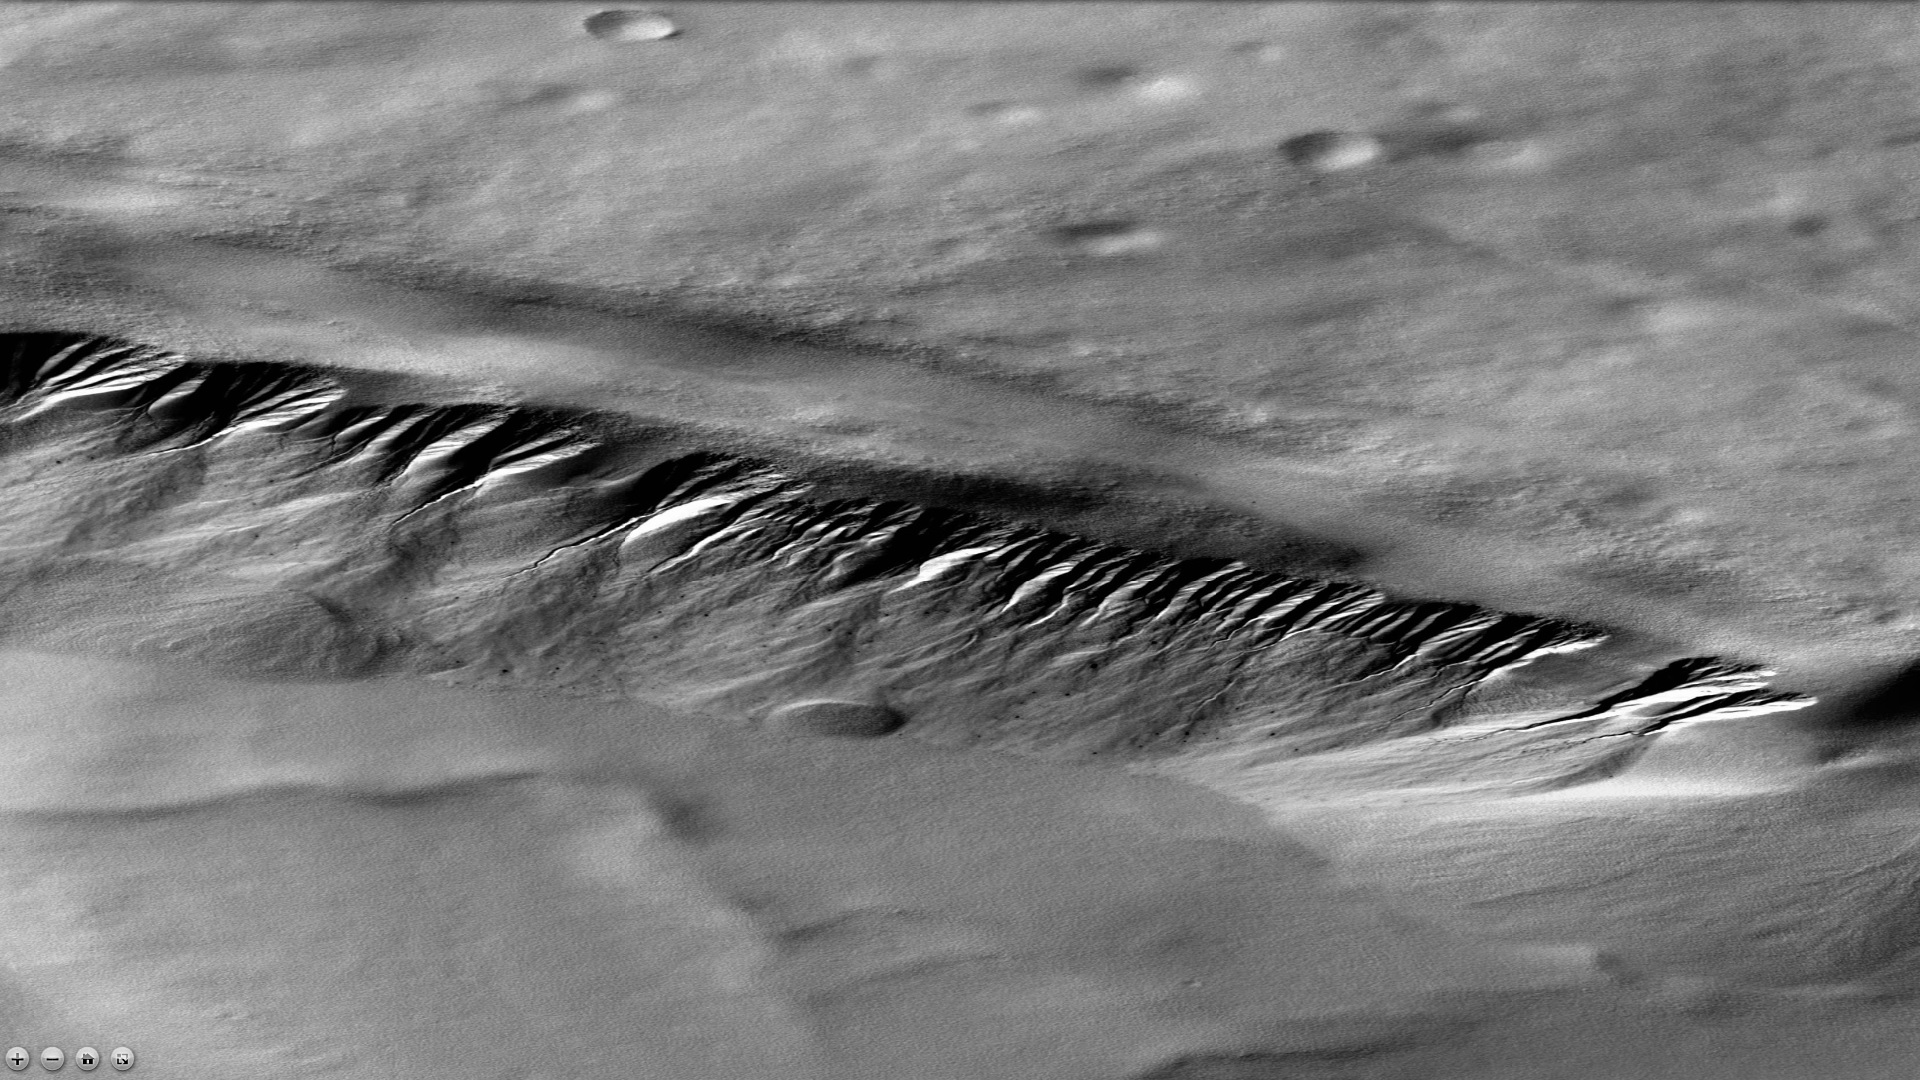 Gullies in Lyell crater, as seen by CTX camera